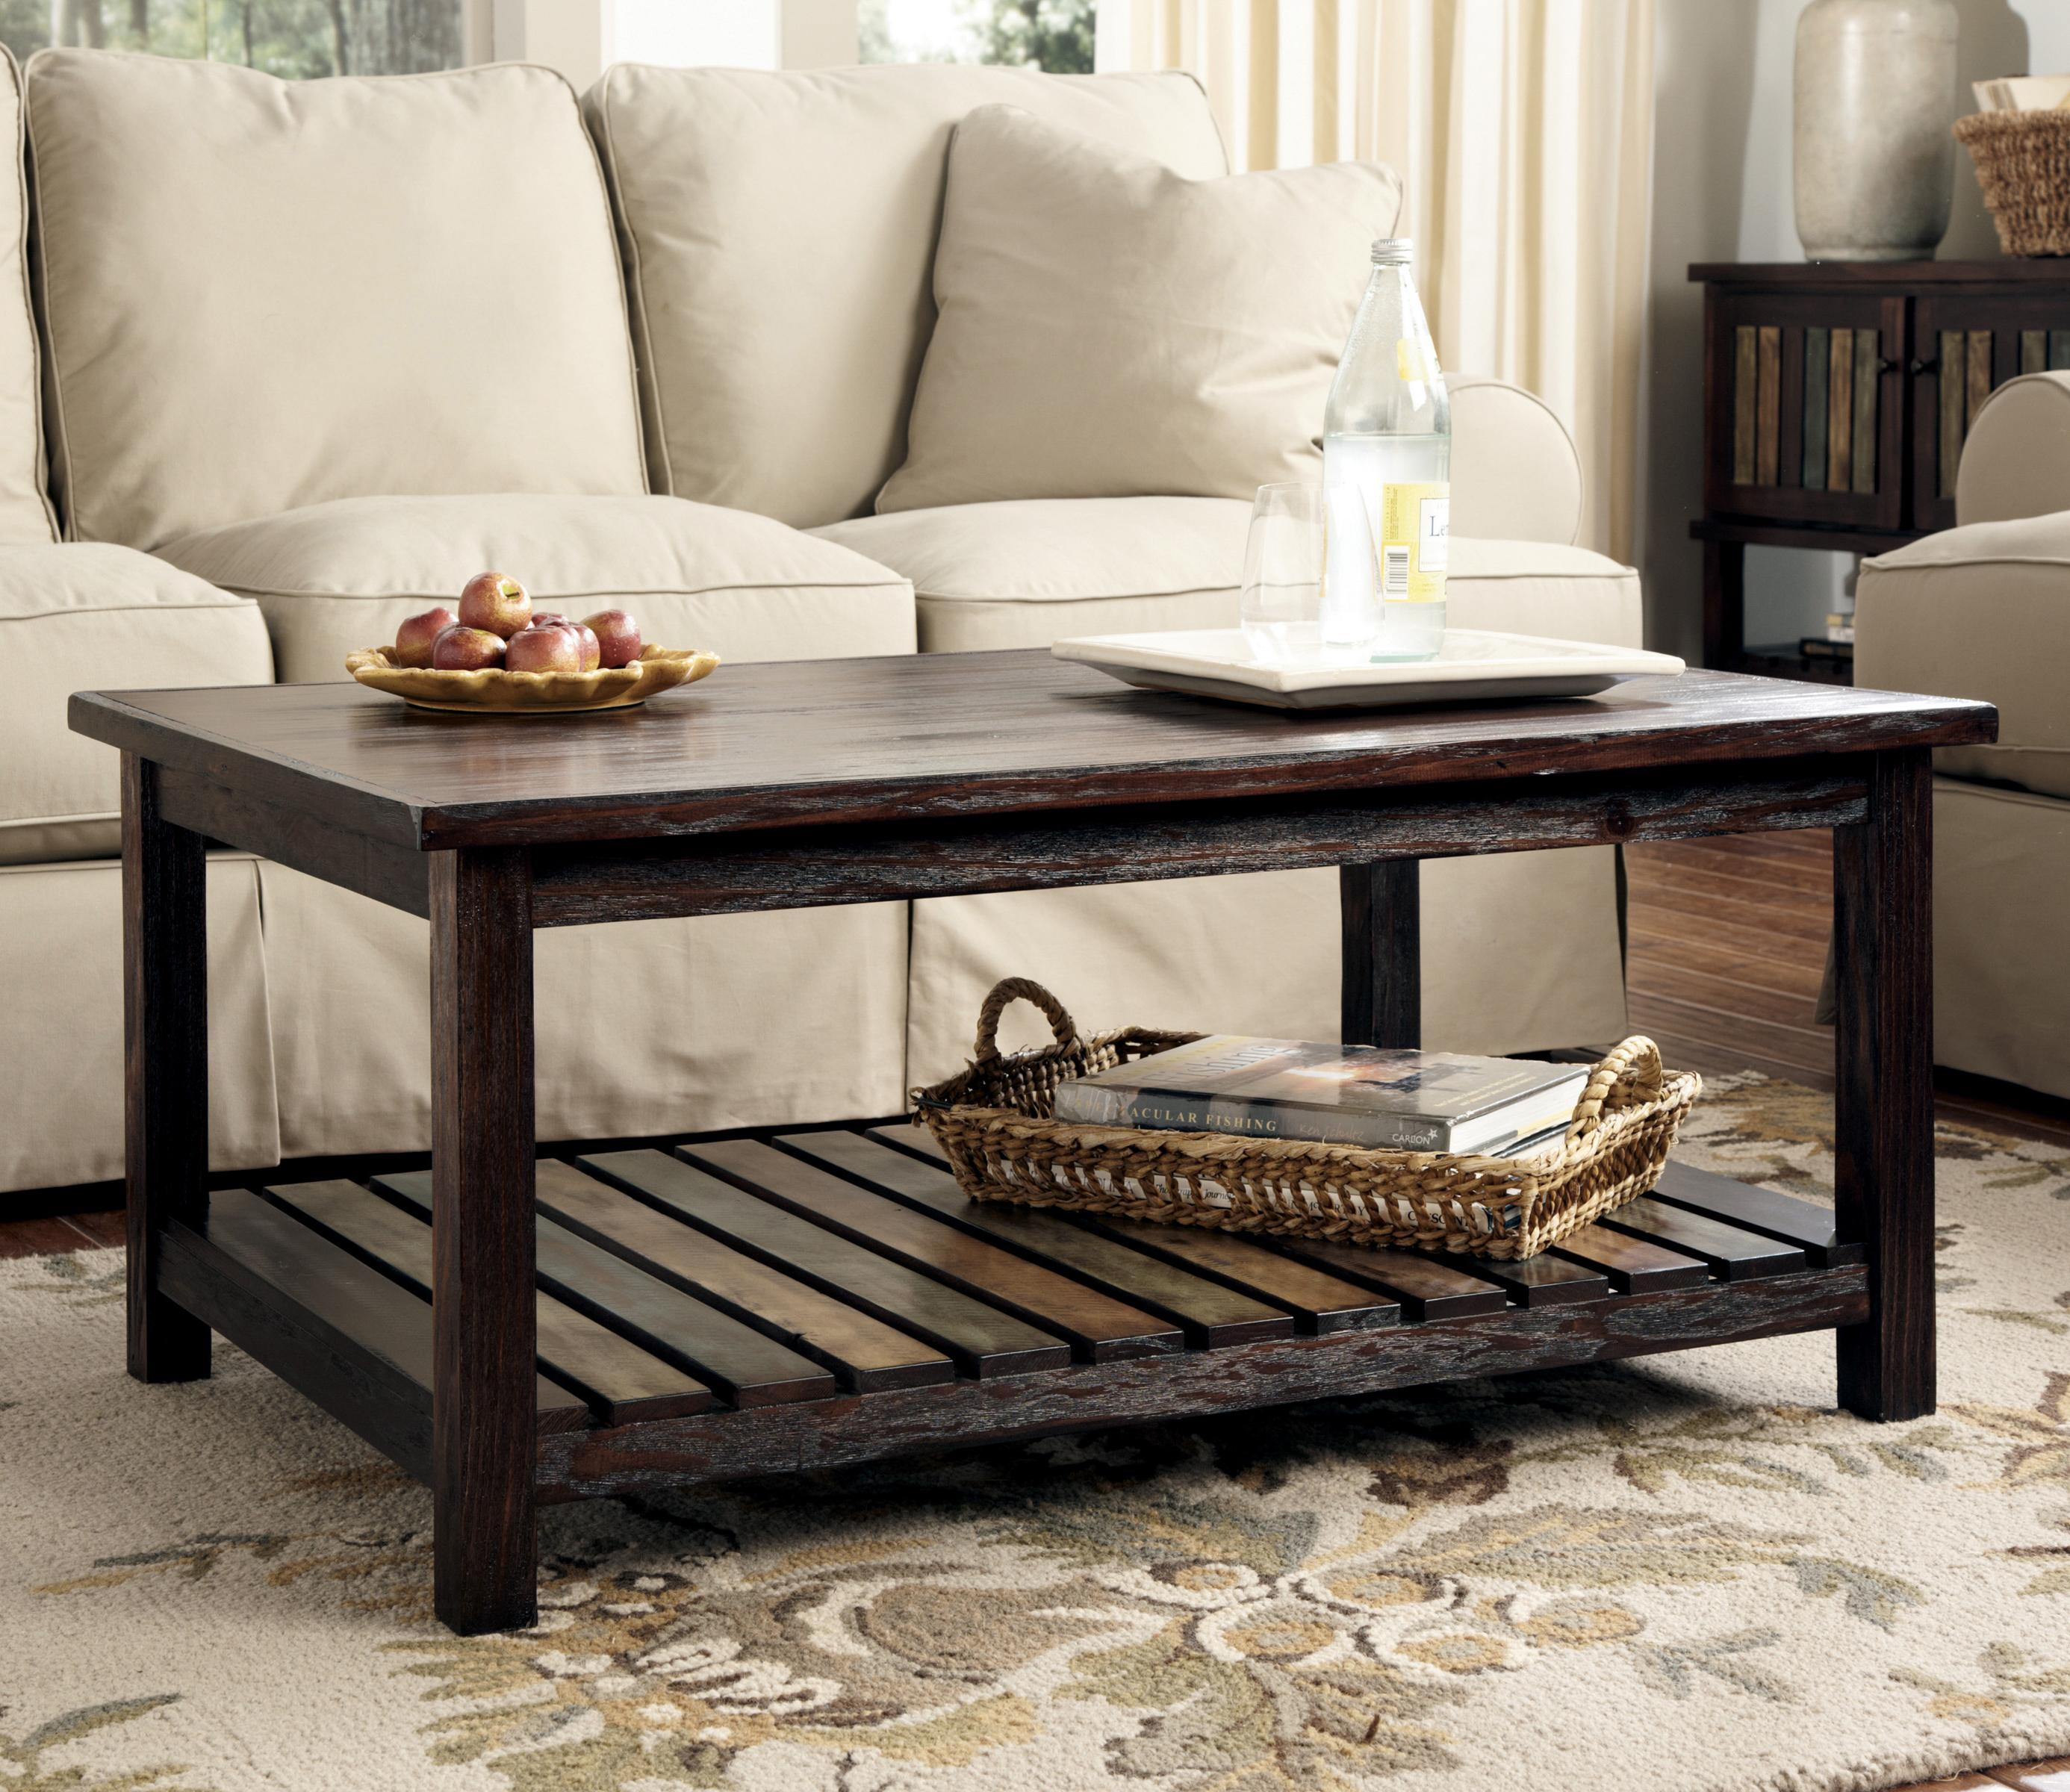 Ashley Furniture Distressed Coffee Table: Signature Design By Ashley Mestler T580-1 Rectangular